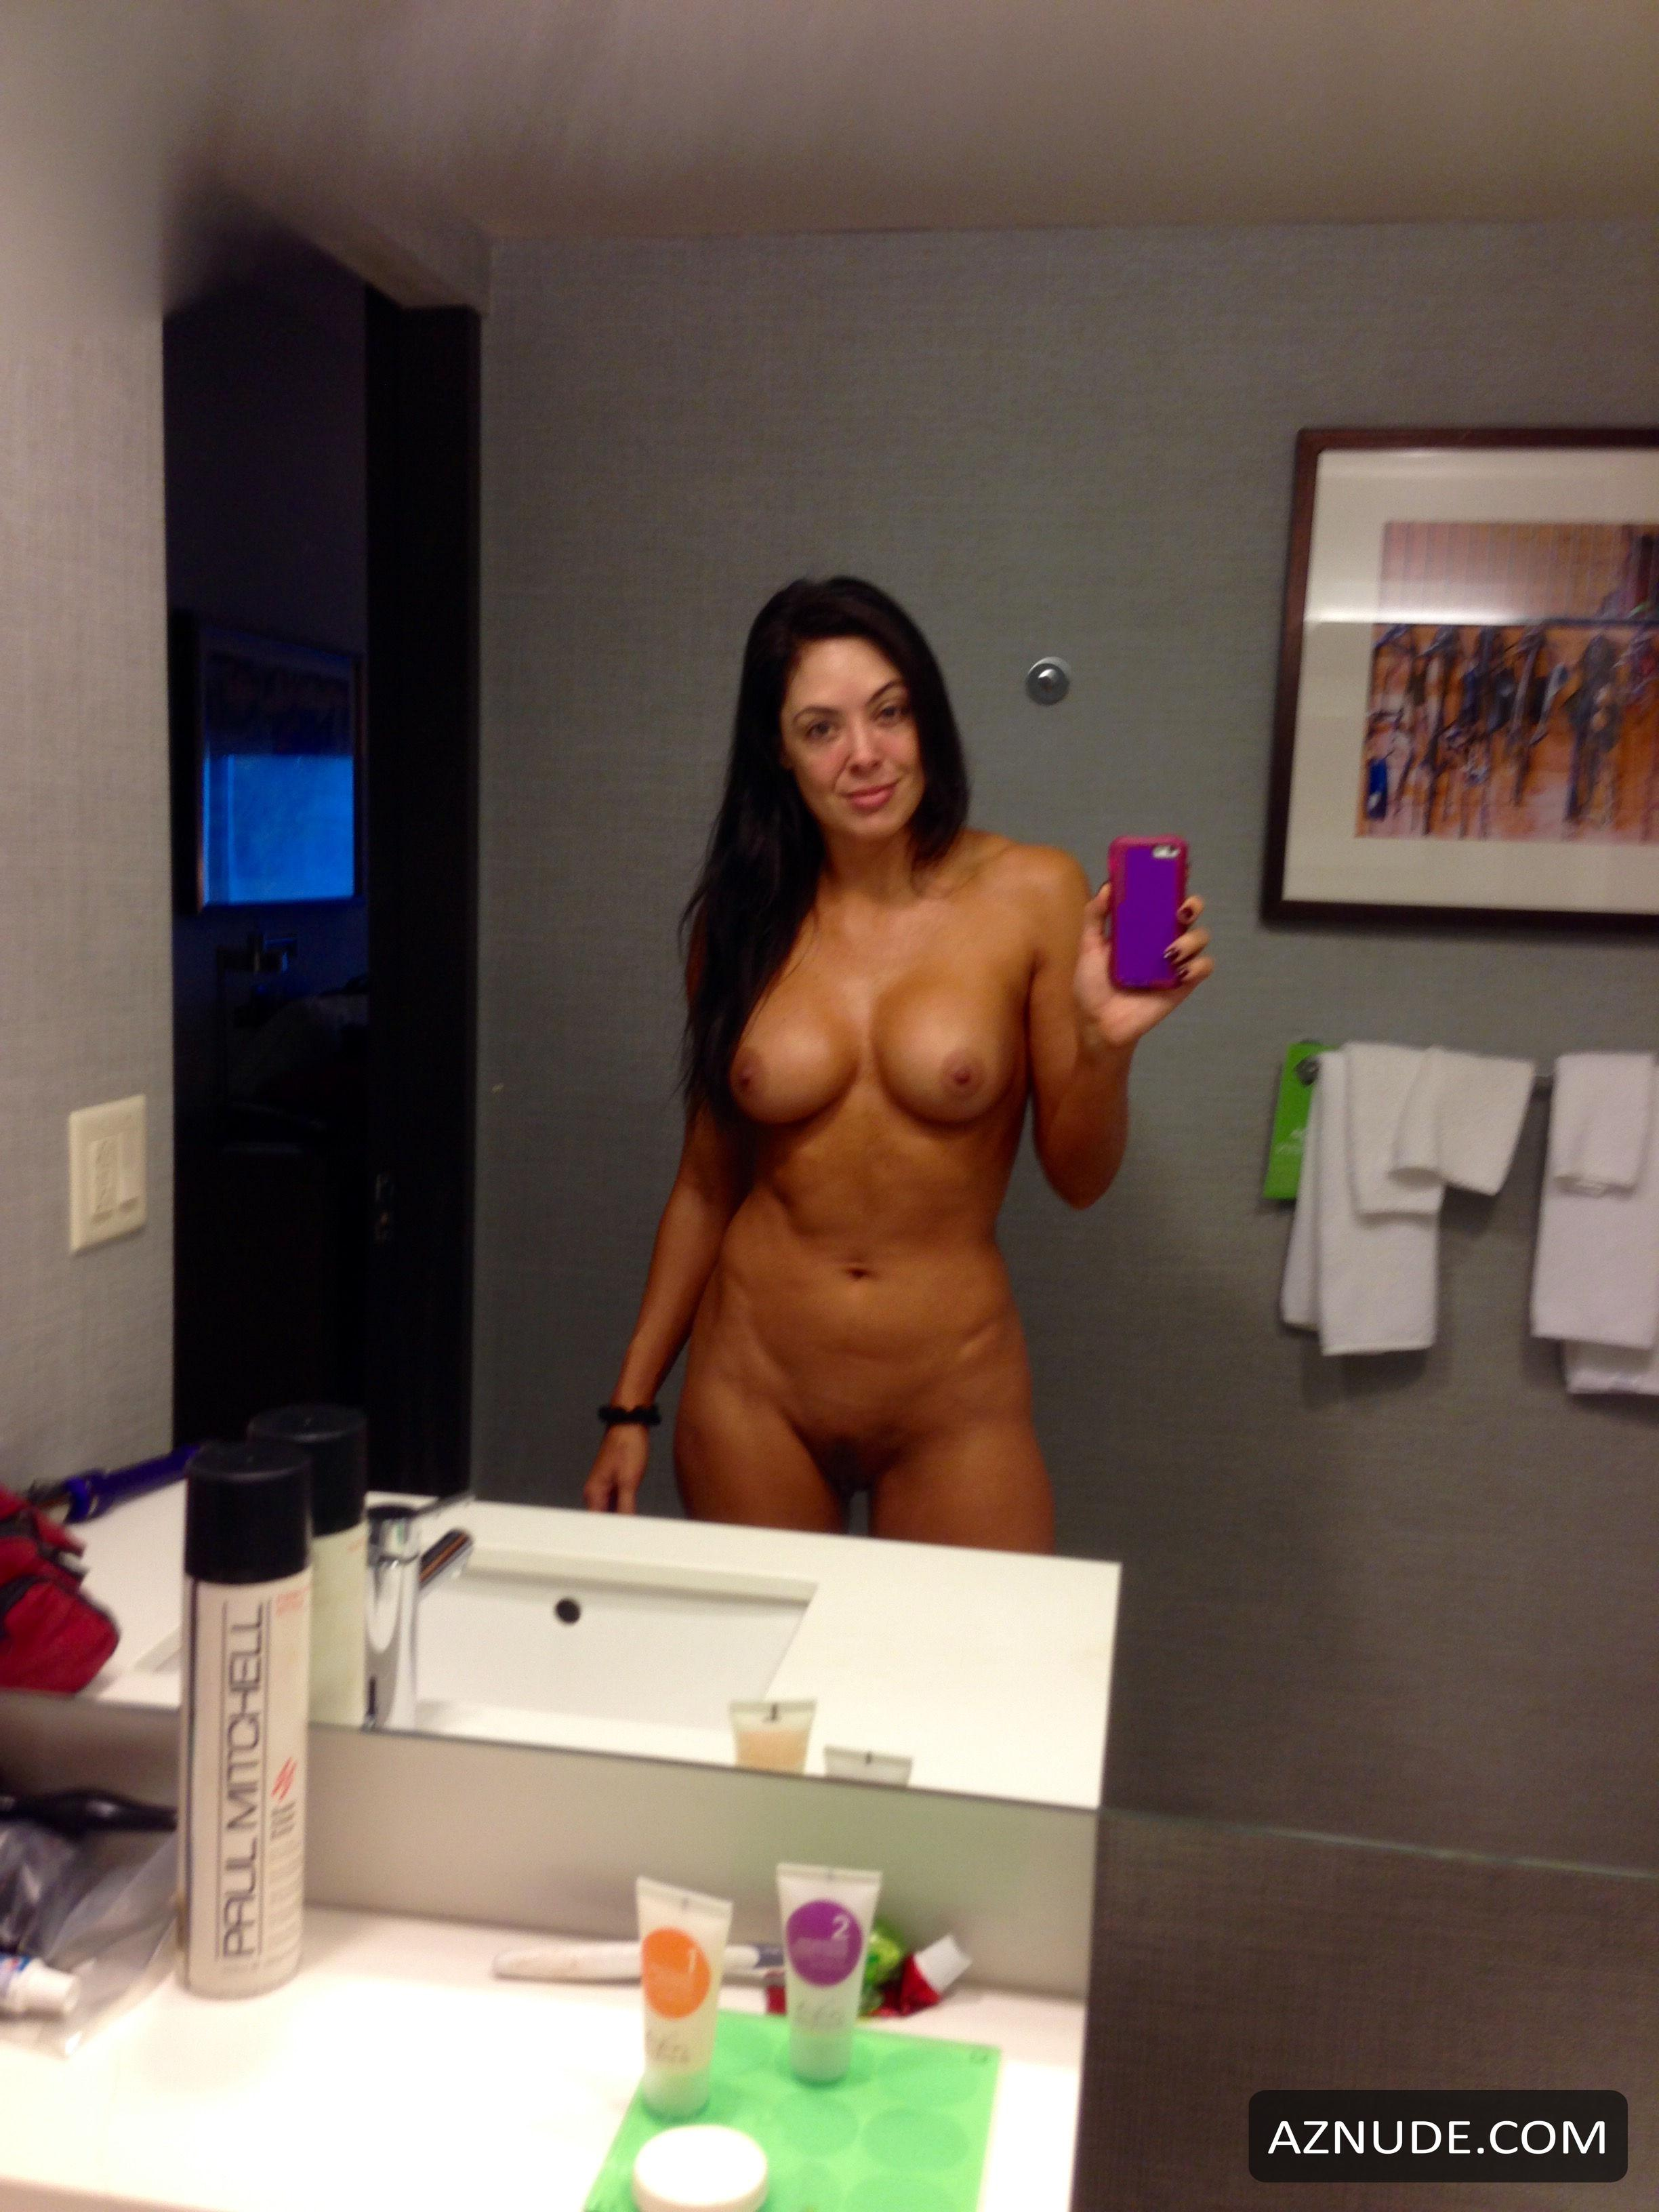 Sex Johanna Orthey nudes (98 foto and video), Topless, Paparazzi, Selfie, cameltoe 2017